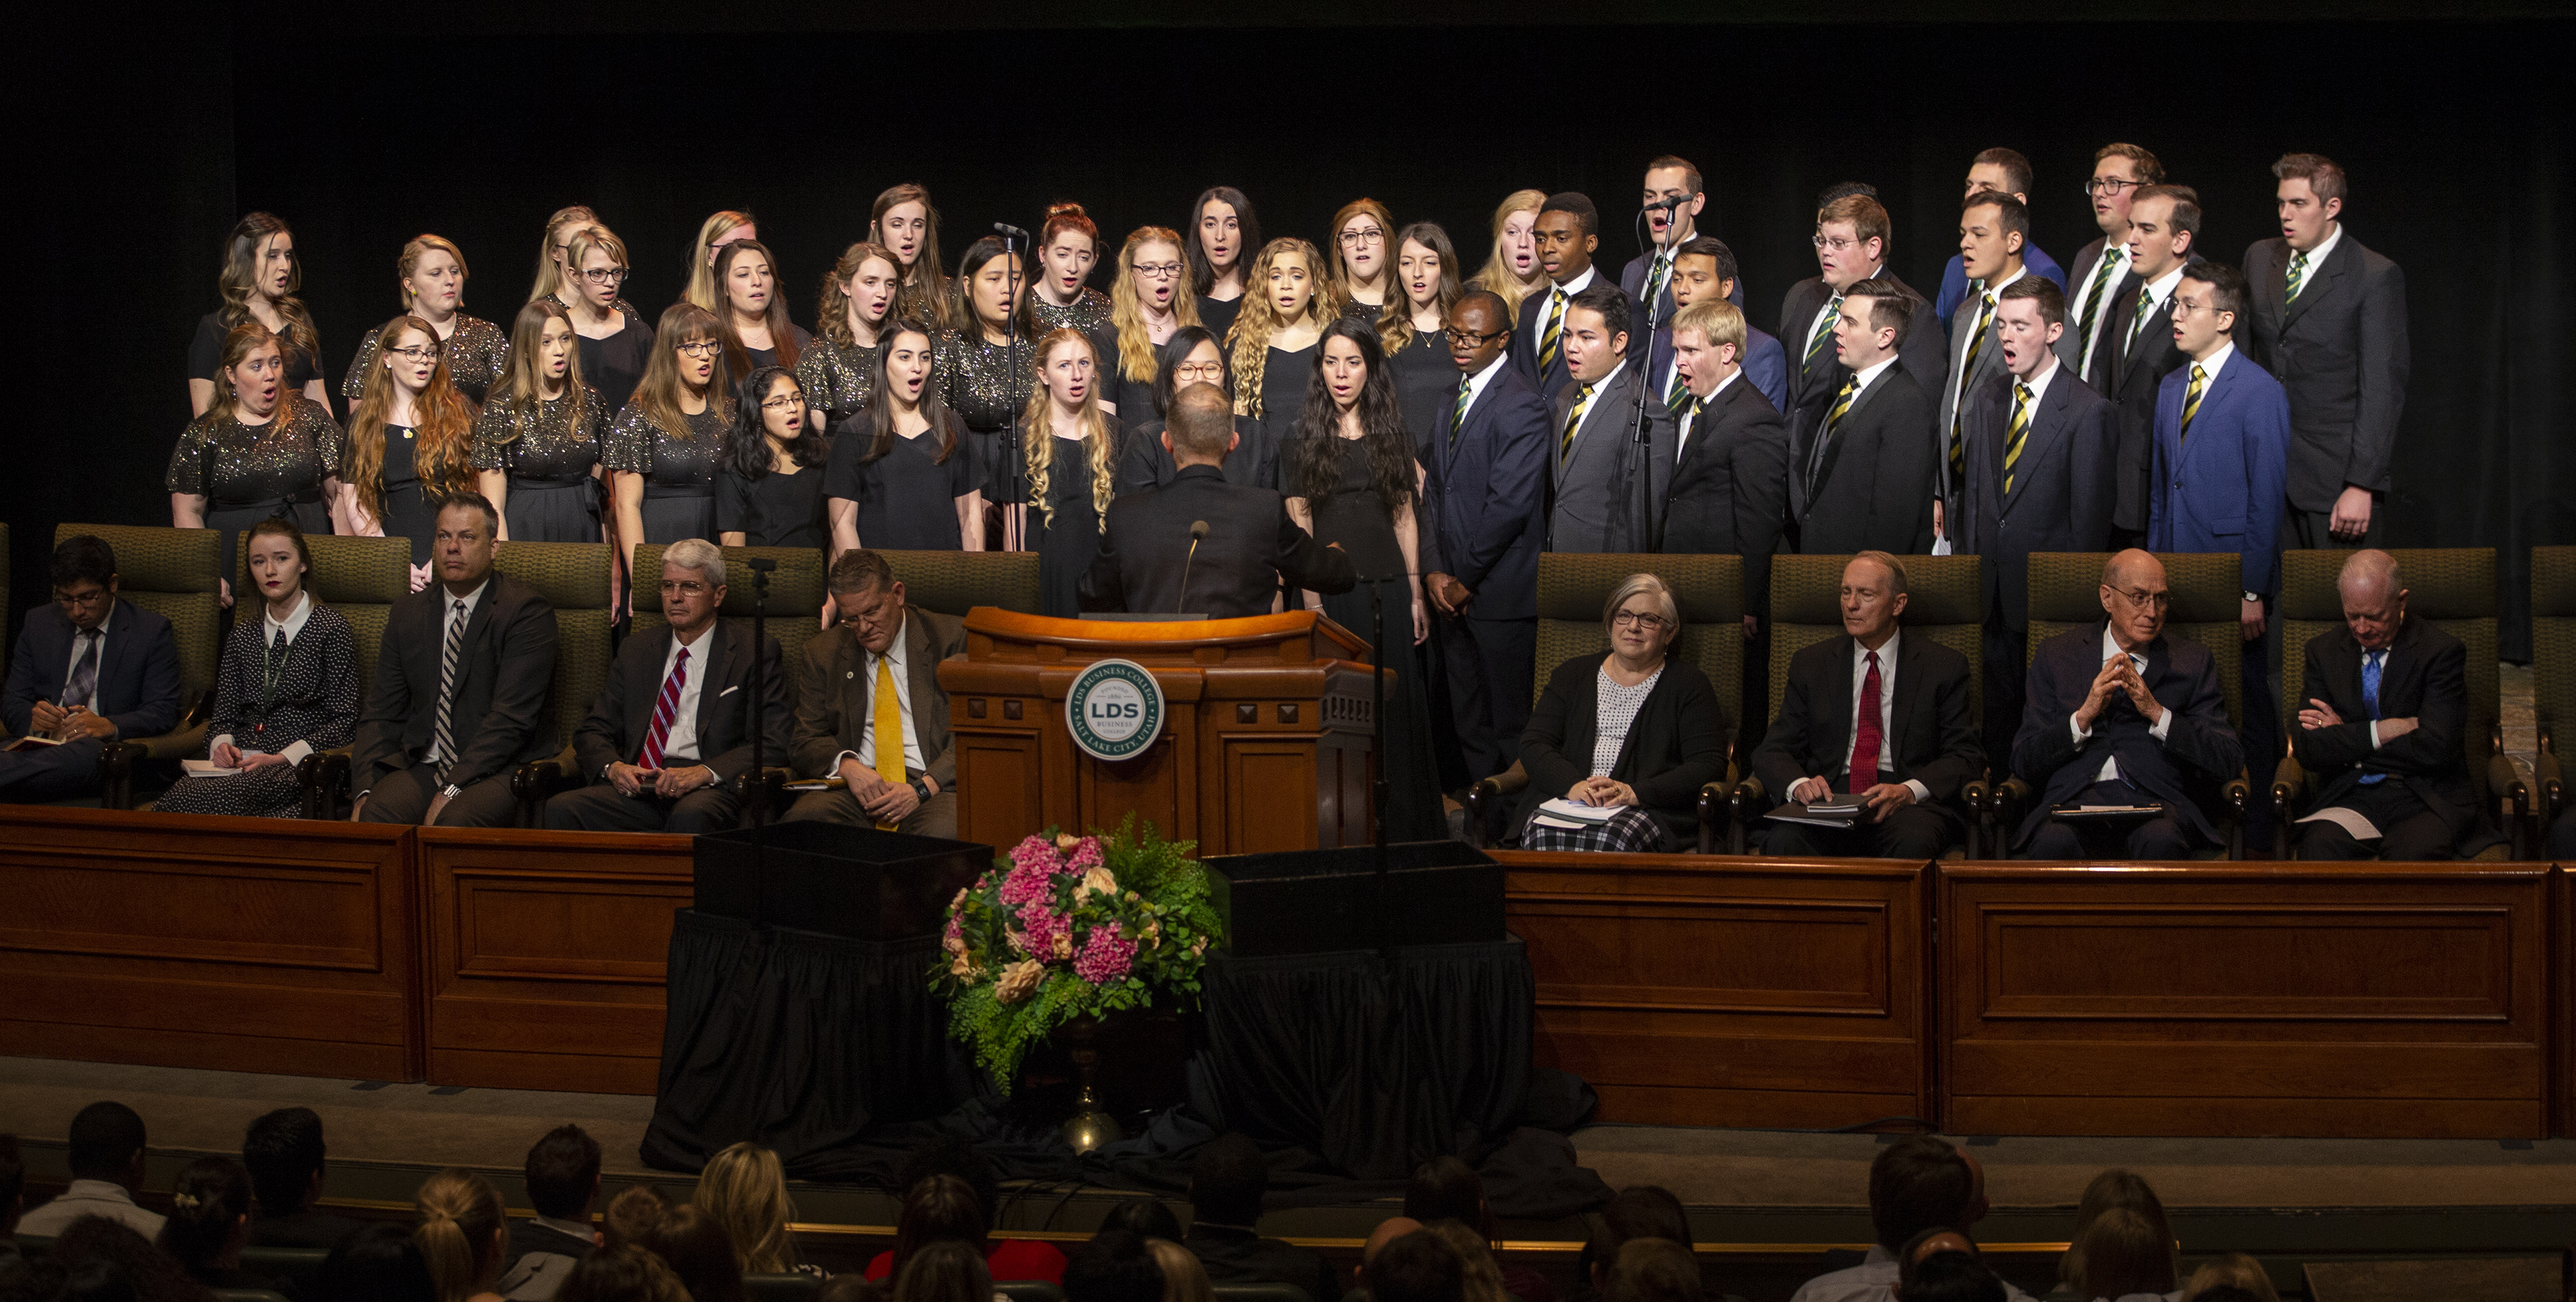 Choir members sing prior to President Henry B. Eyring speaking to LDS Business College students during a devotional in the Conference Center Theater in Salt Lake City on Tuesday, Nov. 6, 2018.